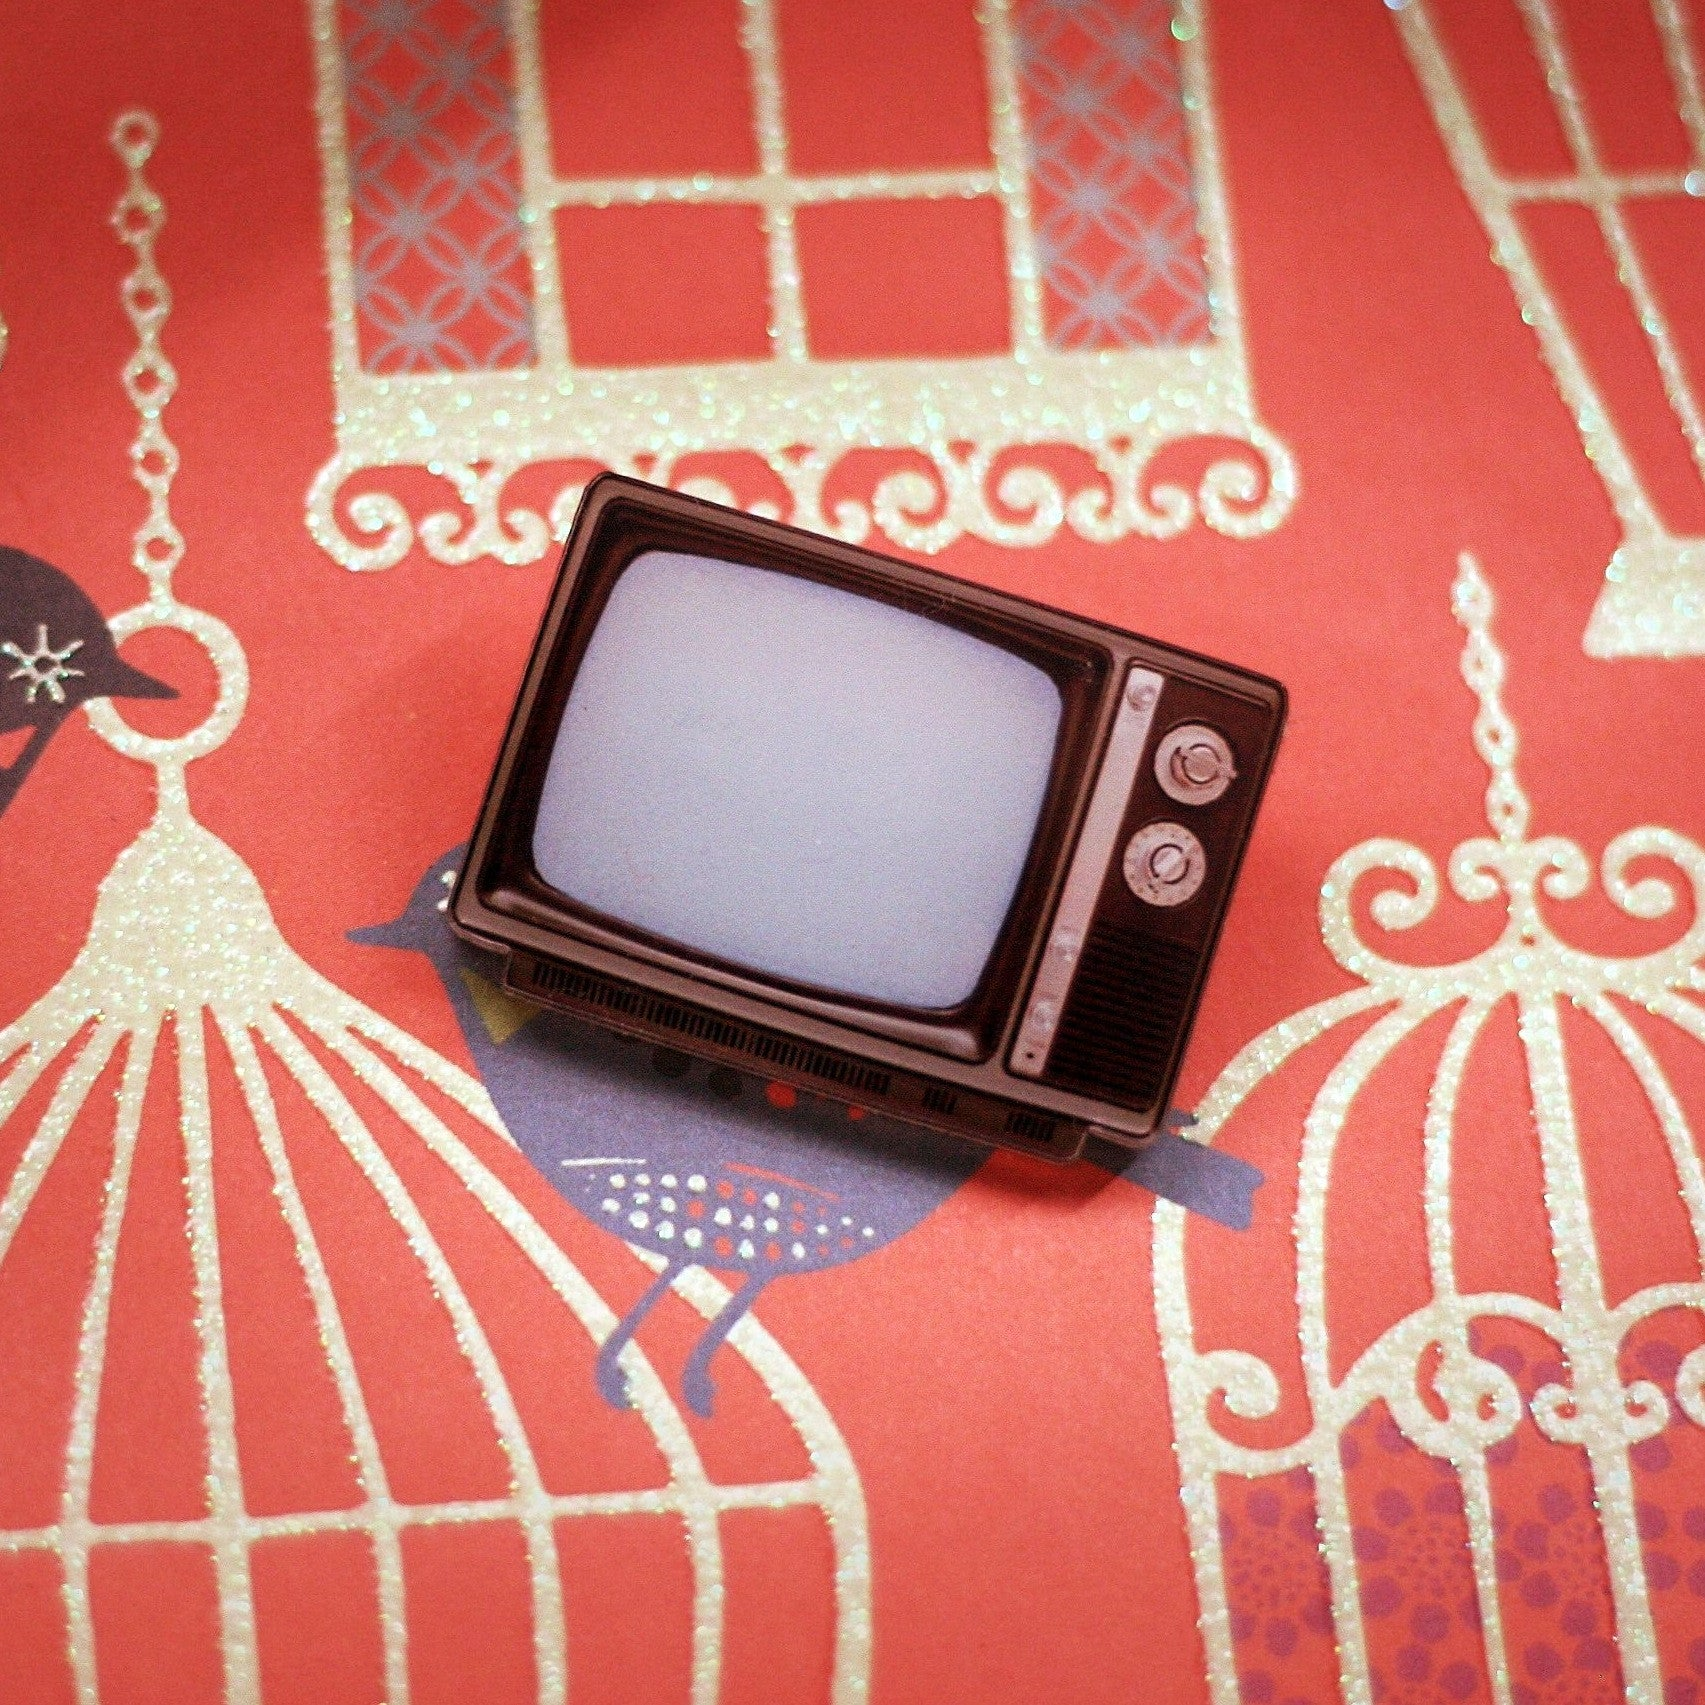 Retro television brooch - Ice Cream Cake